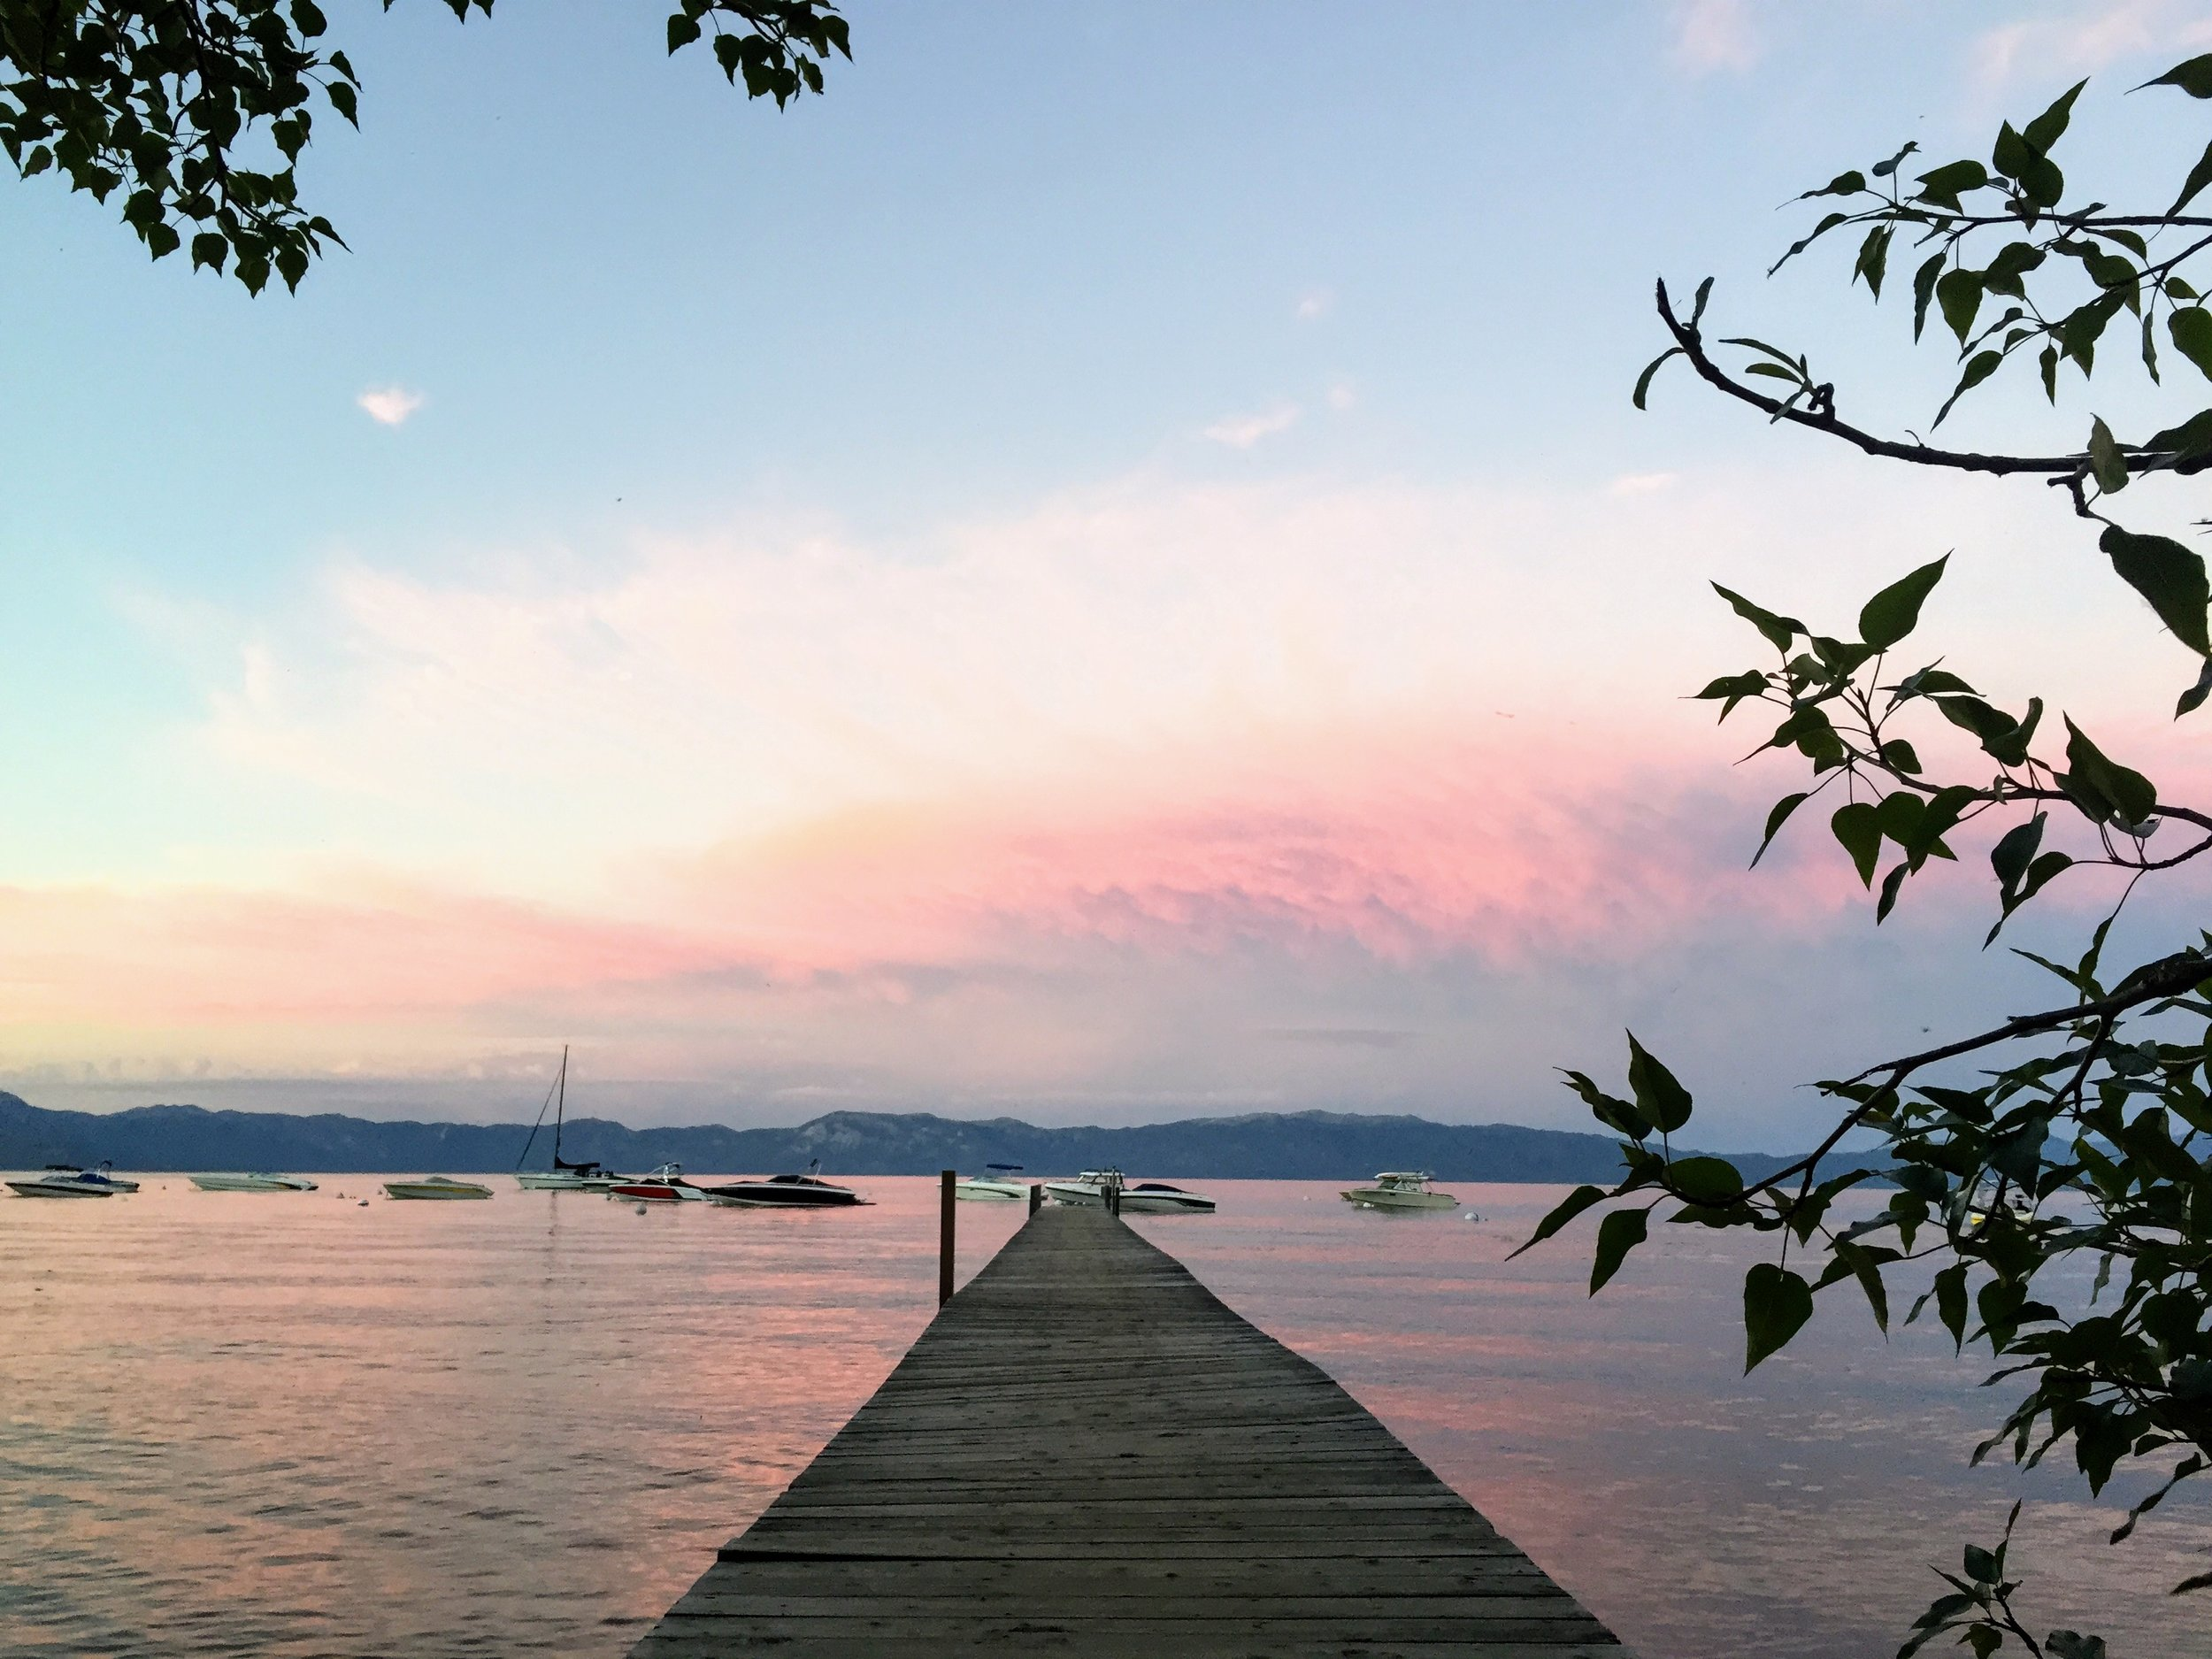 pastels on the lake.